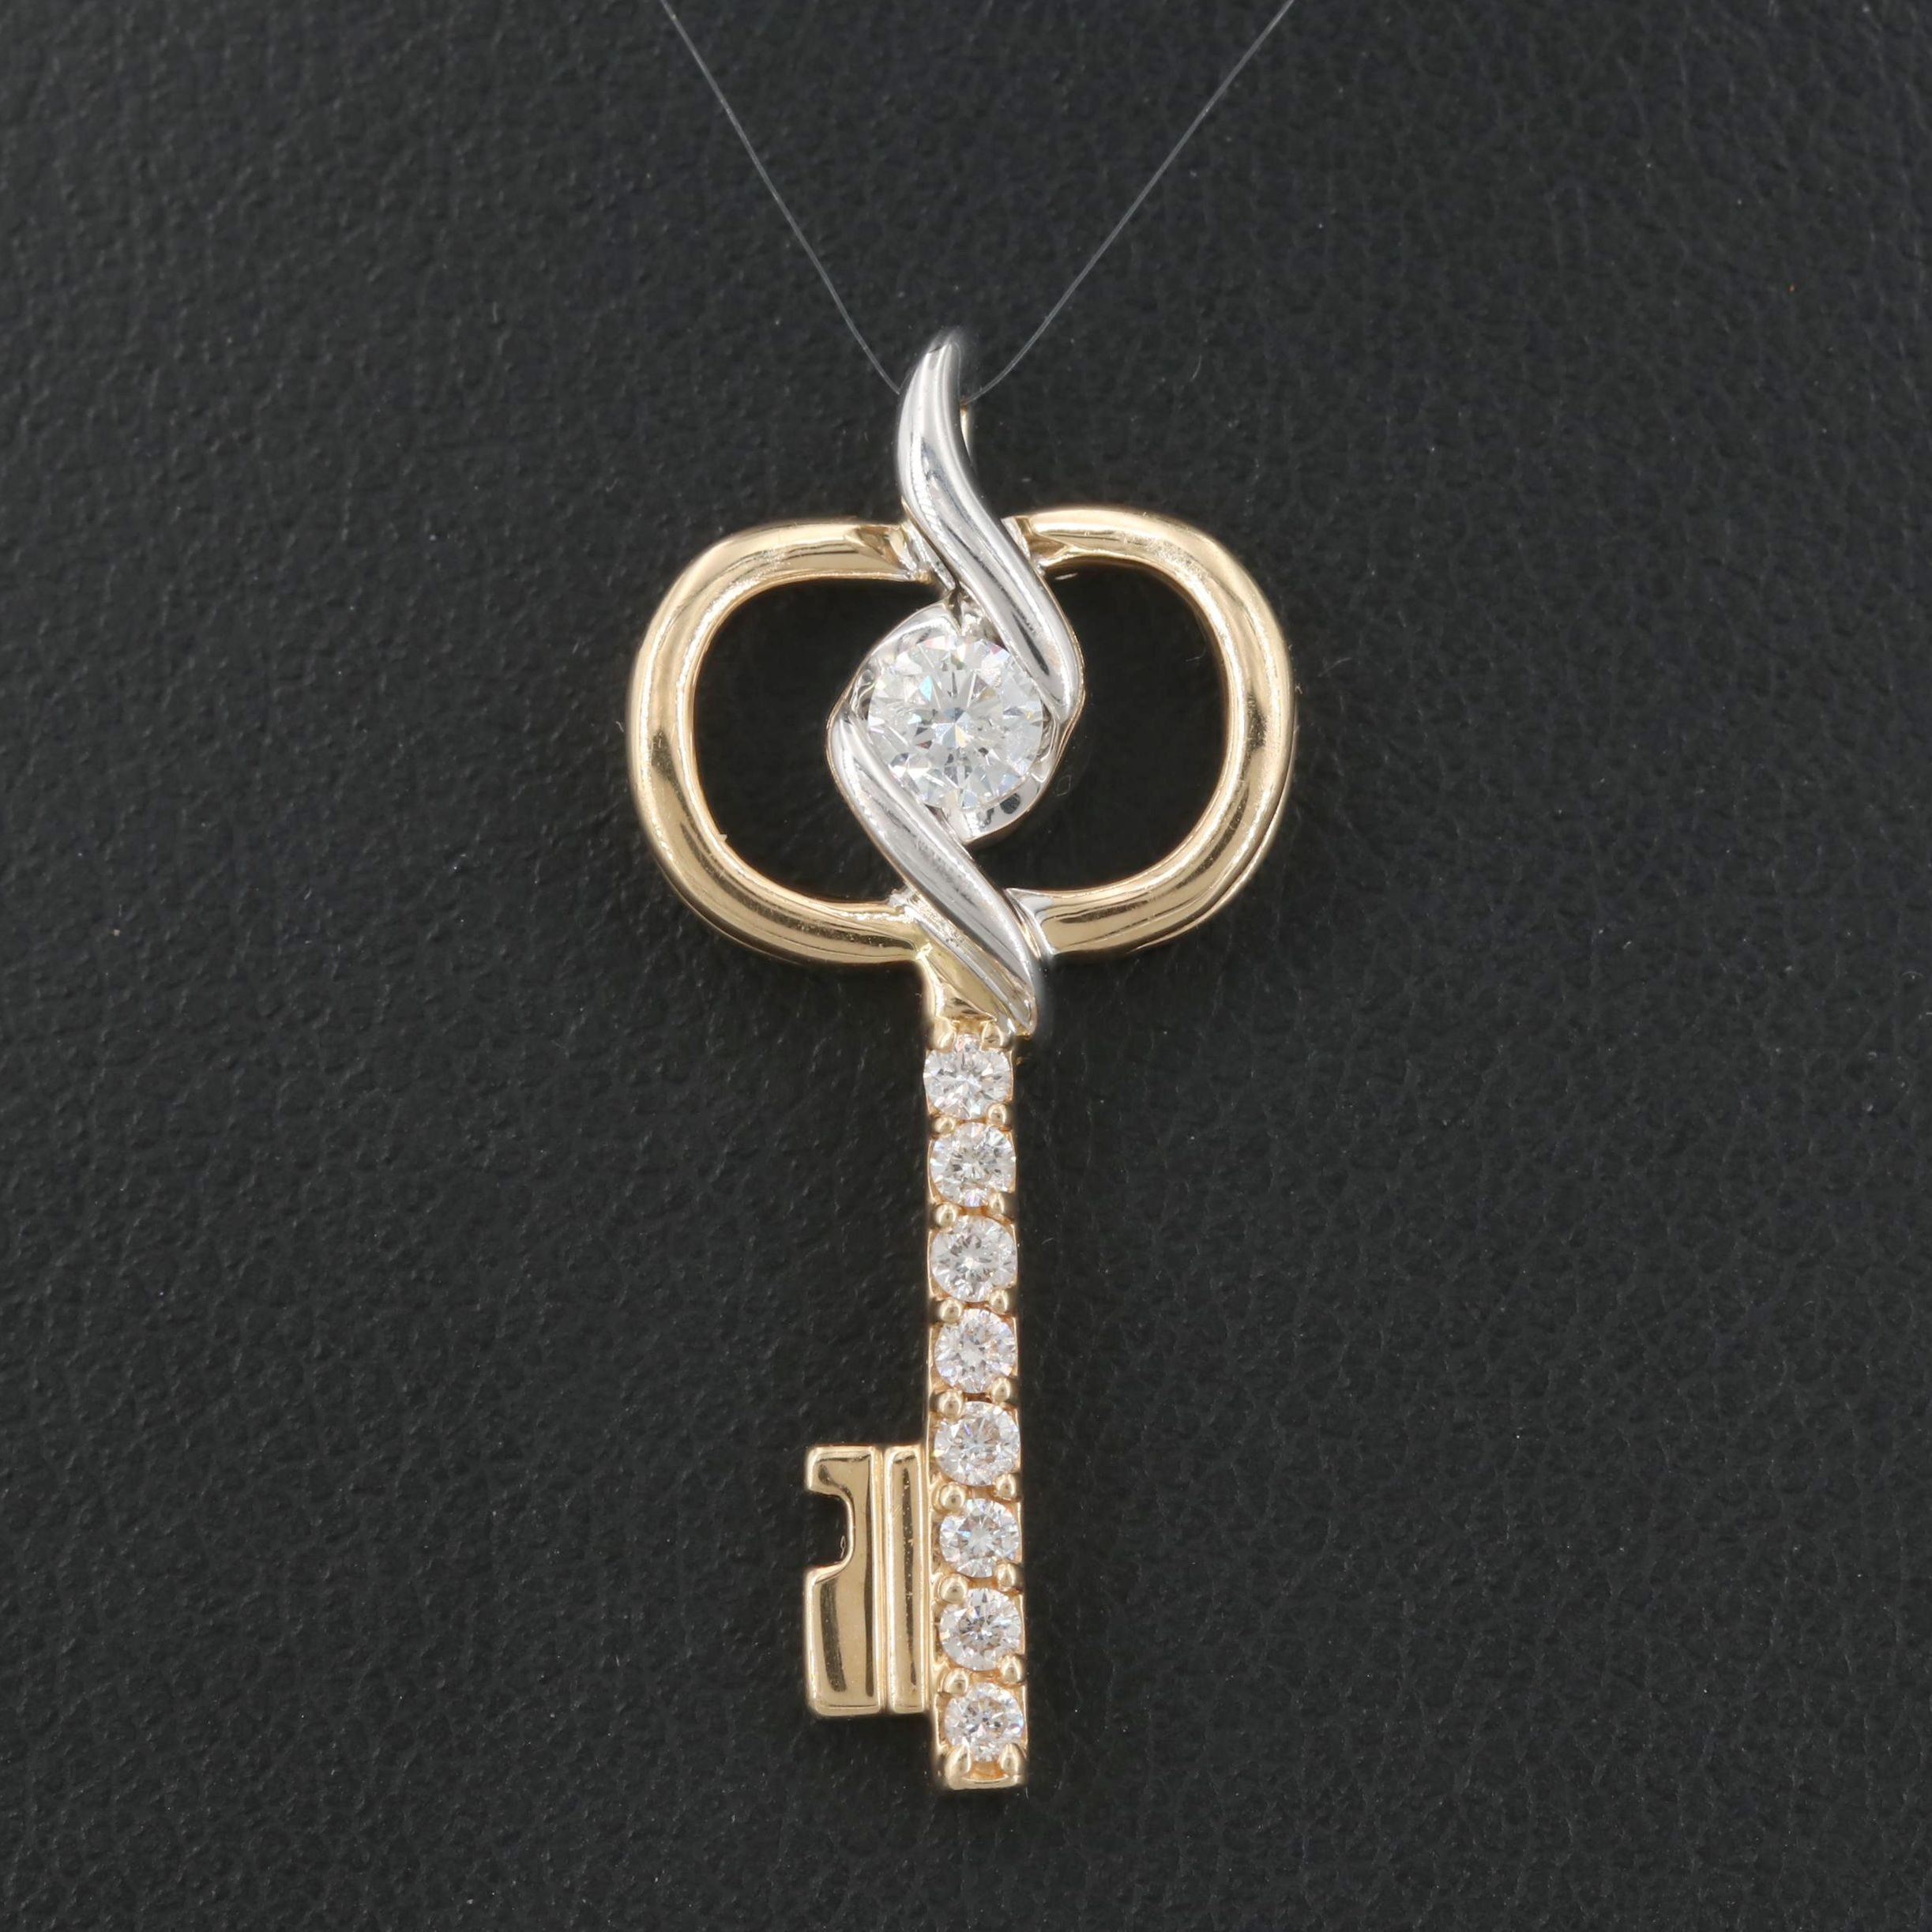 14K Yellow Gold Diamond Key Pendant with White Gold Accents